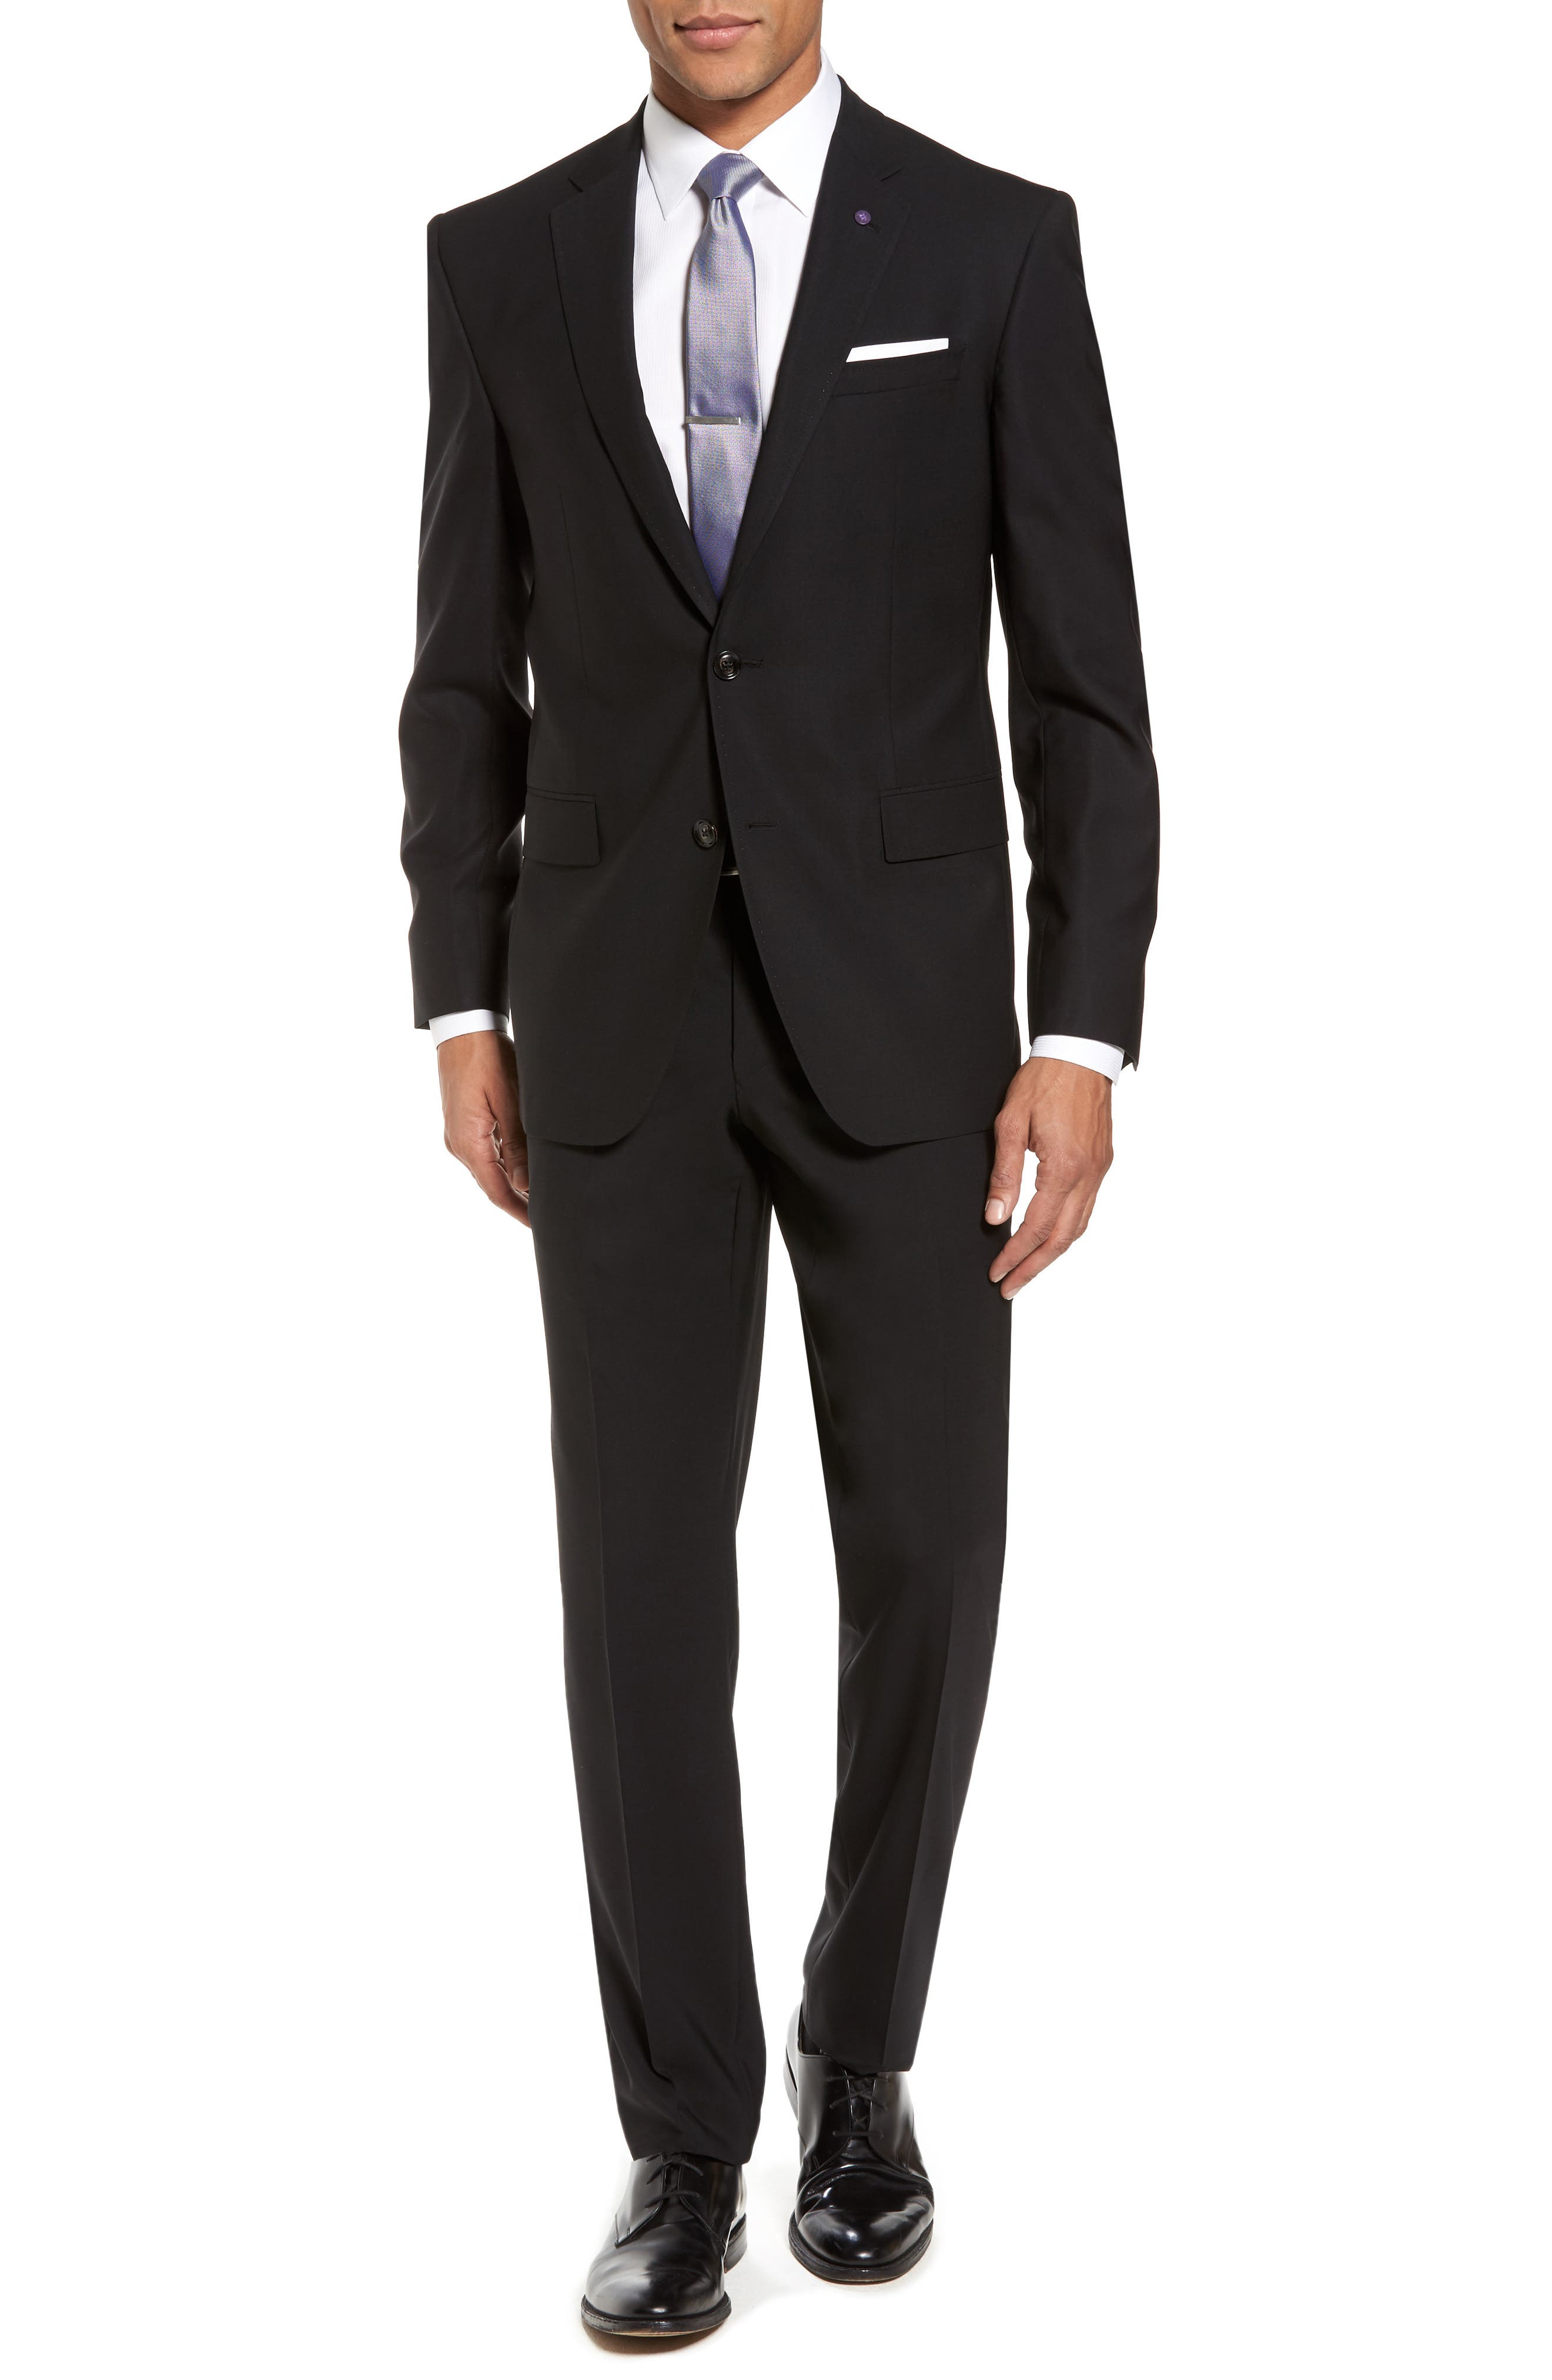 Jay Trim Fit Solid Wool Suit,                             Main thumbnail 1, color,                             Black